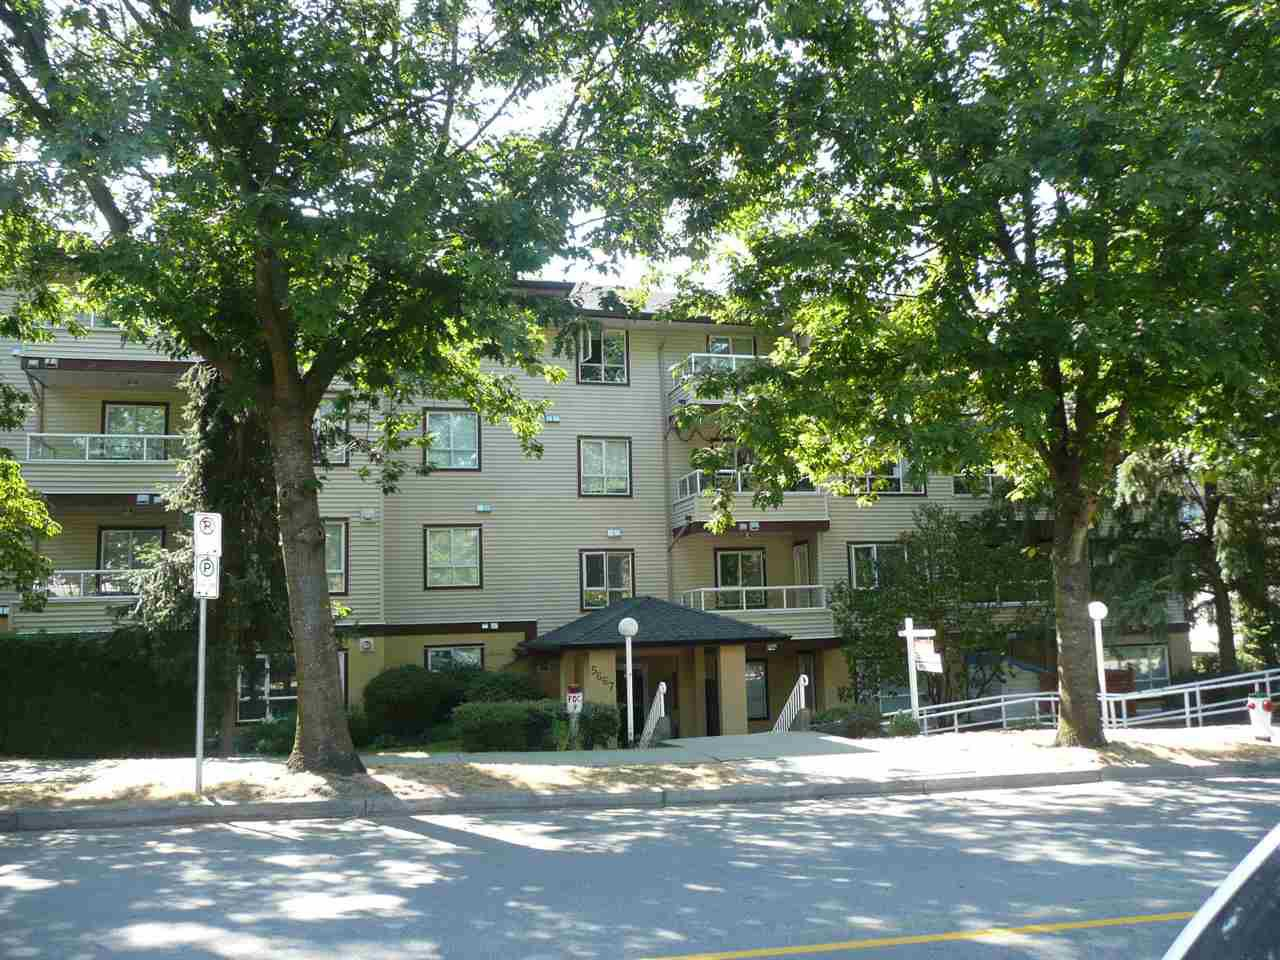 Main Photo: 210 5667 SMITH AVENUE in Burnaby: Central Park BS Condo for sale (Burnaby South)  : MLS®# R2294161